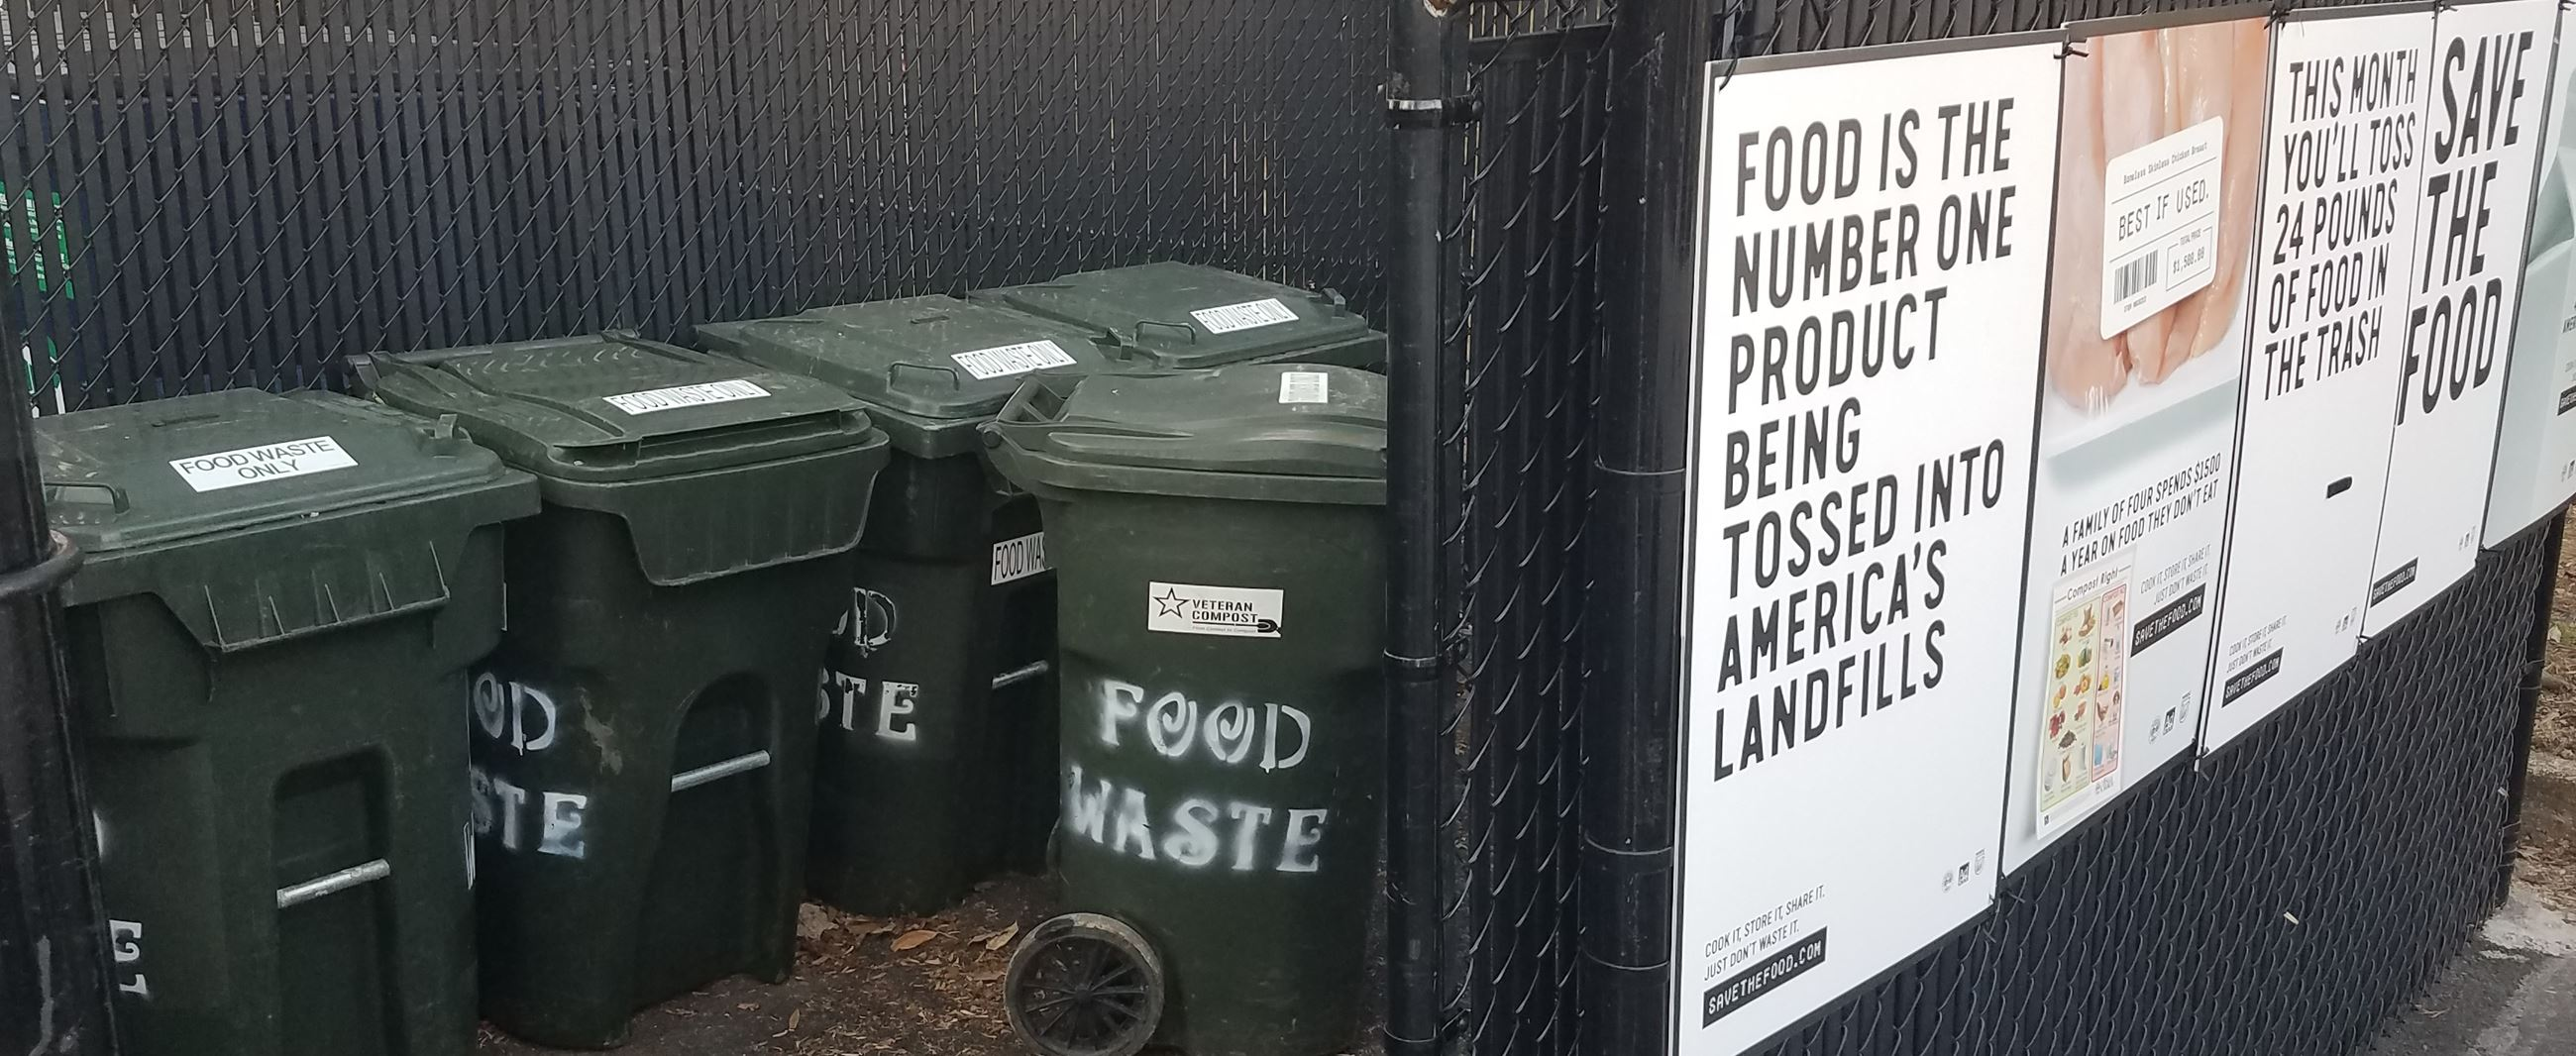 Community Compost Program